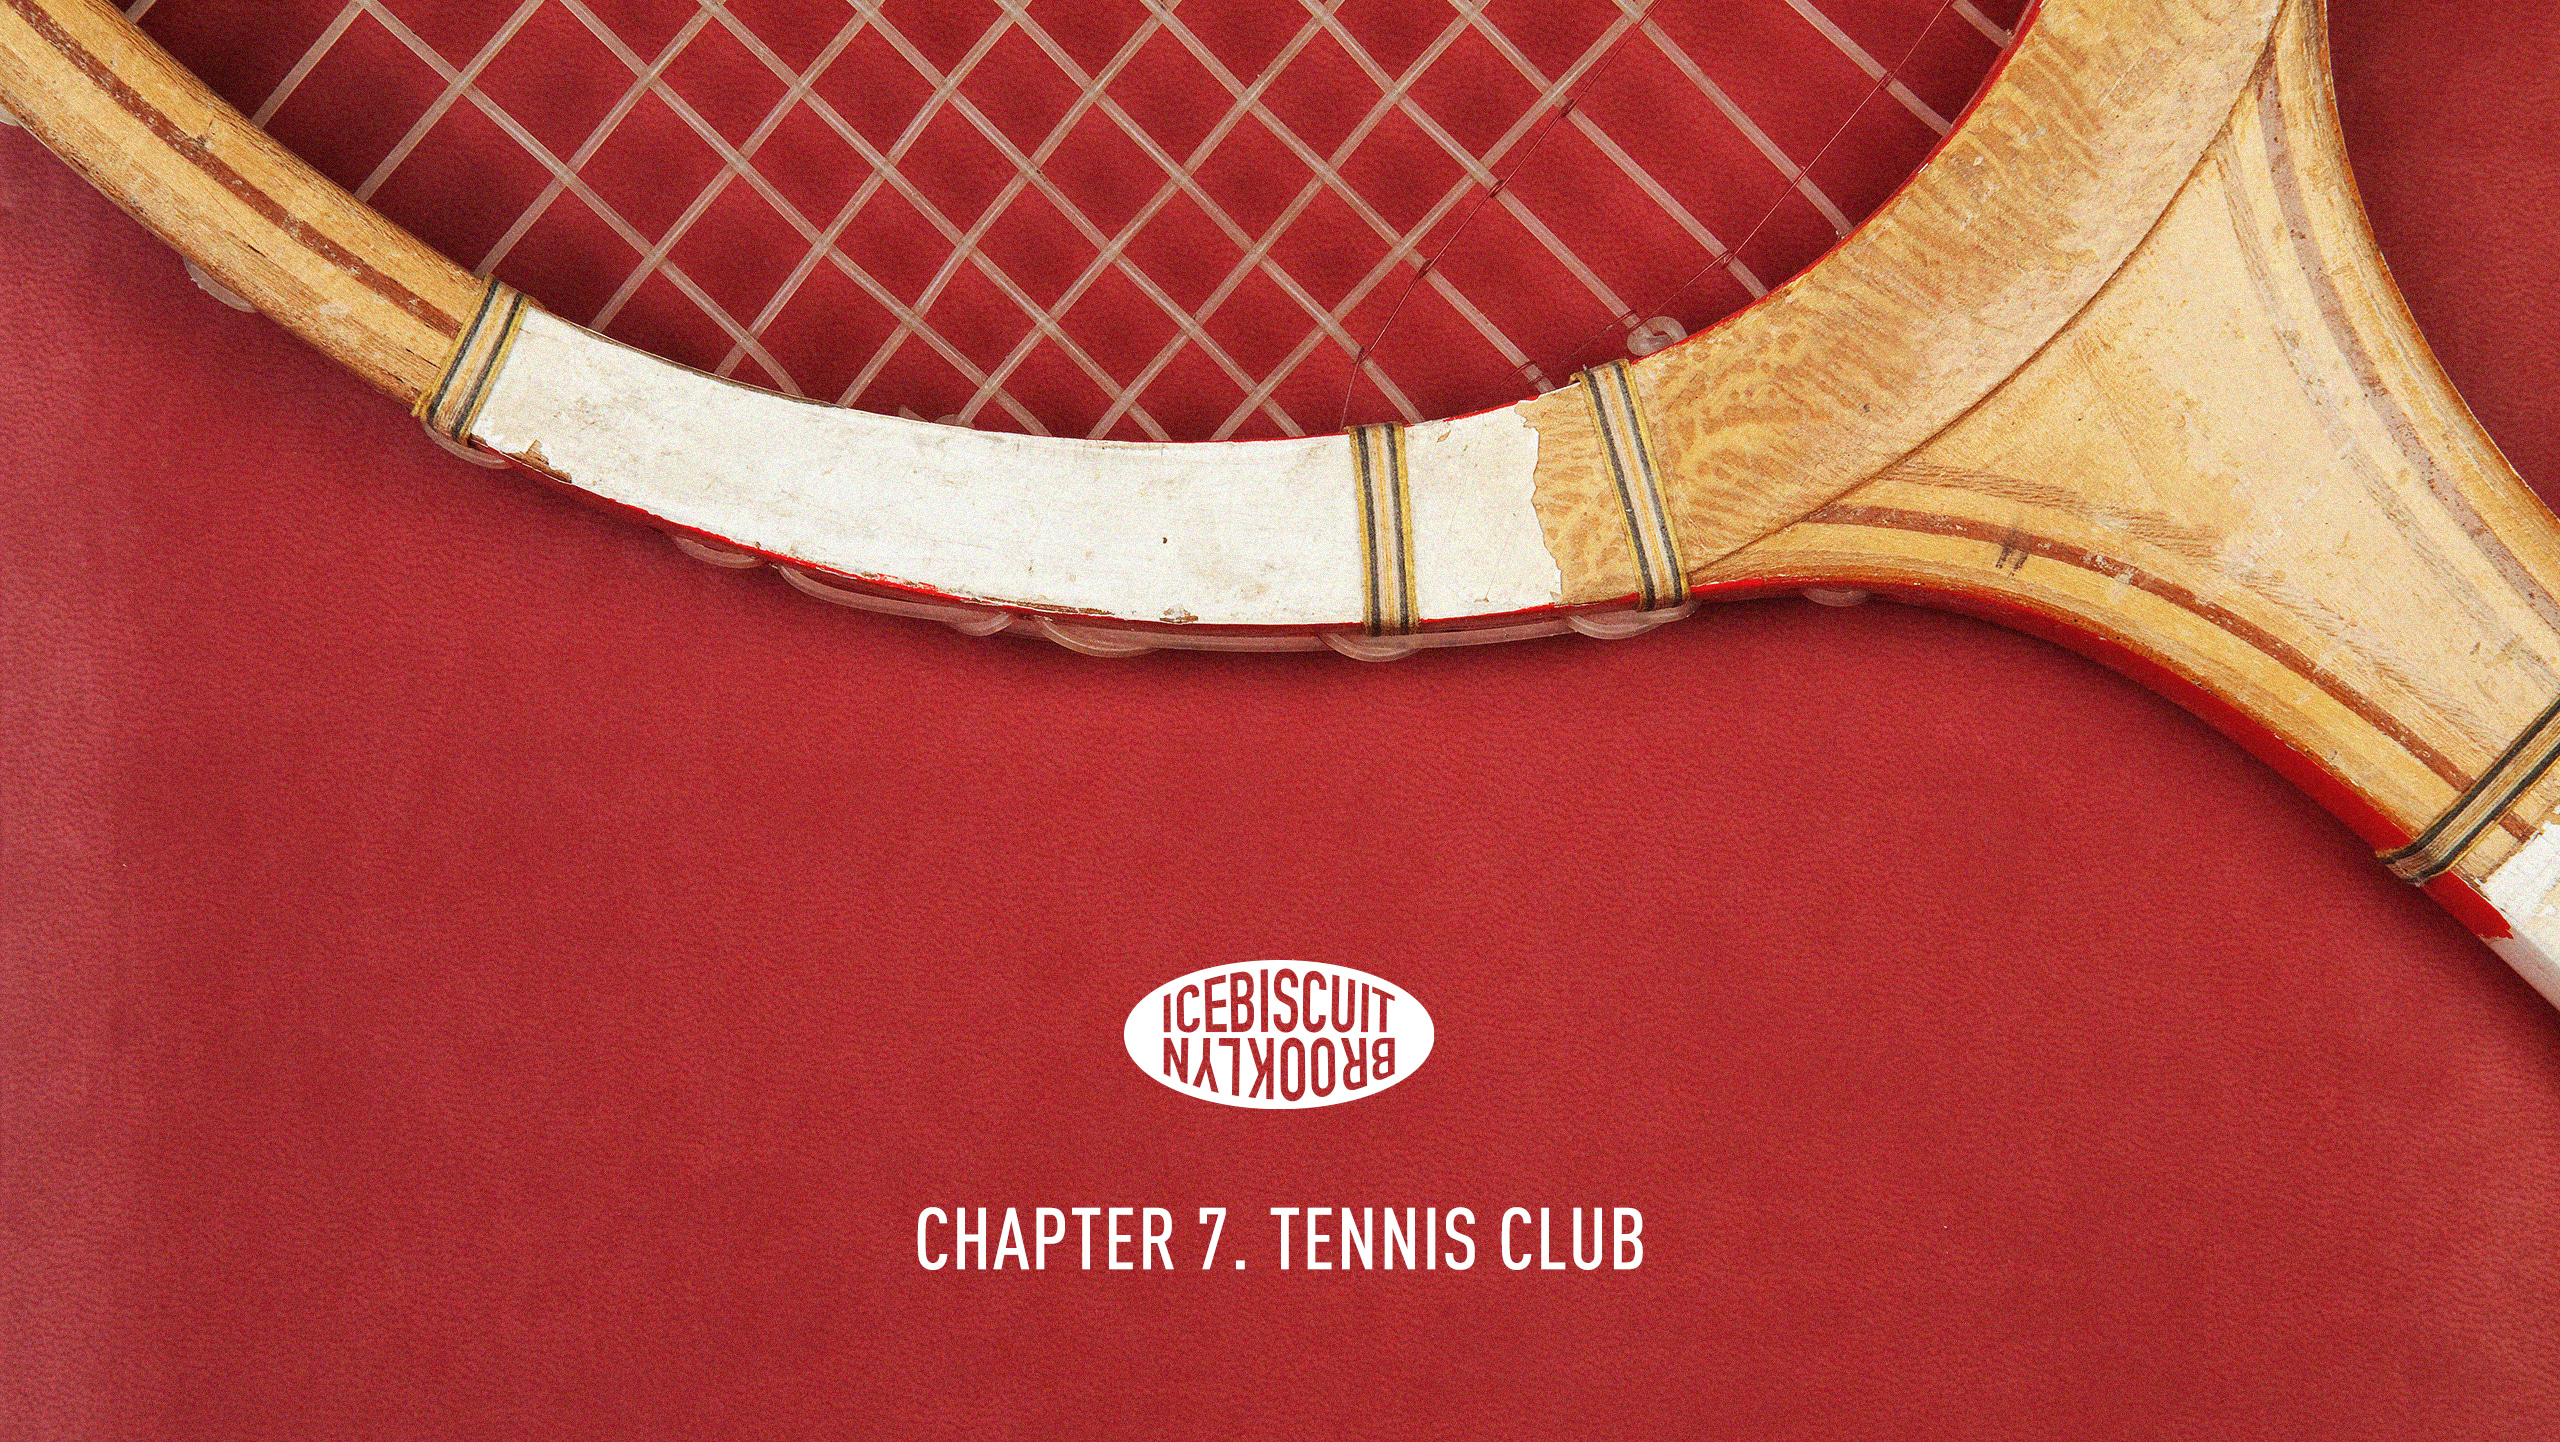 아이스비스킷 - chapter 7. Tennis Club